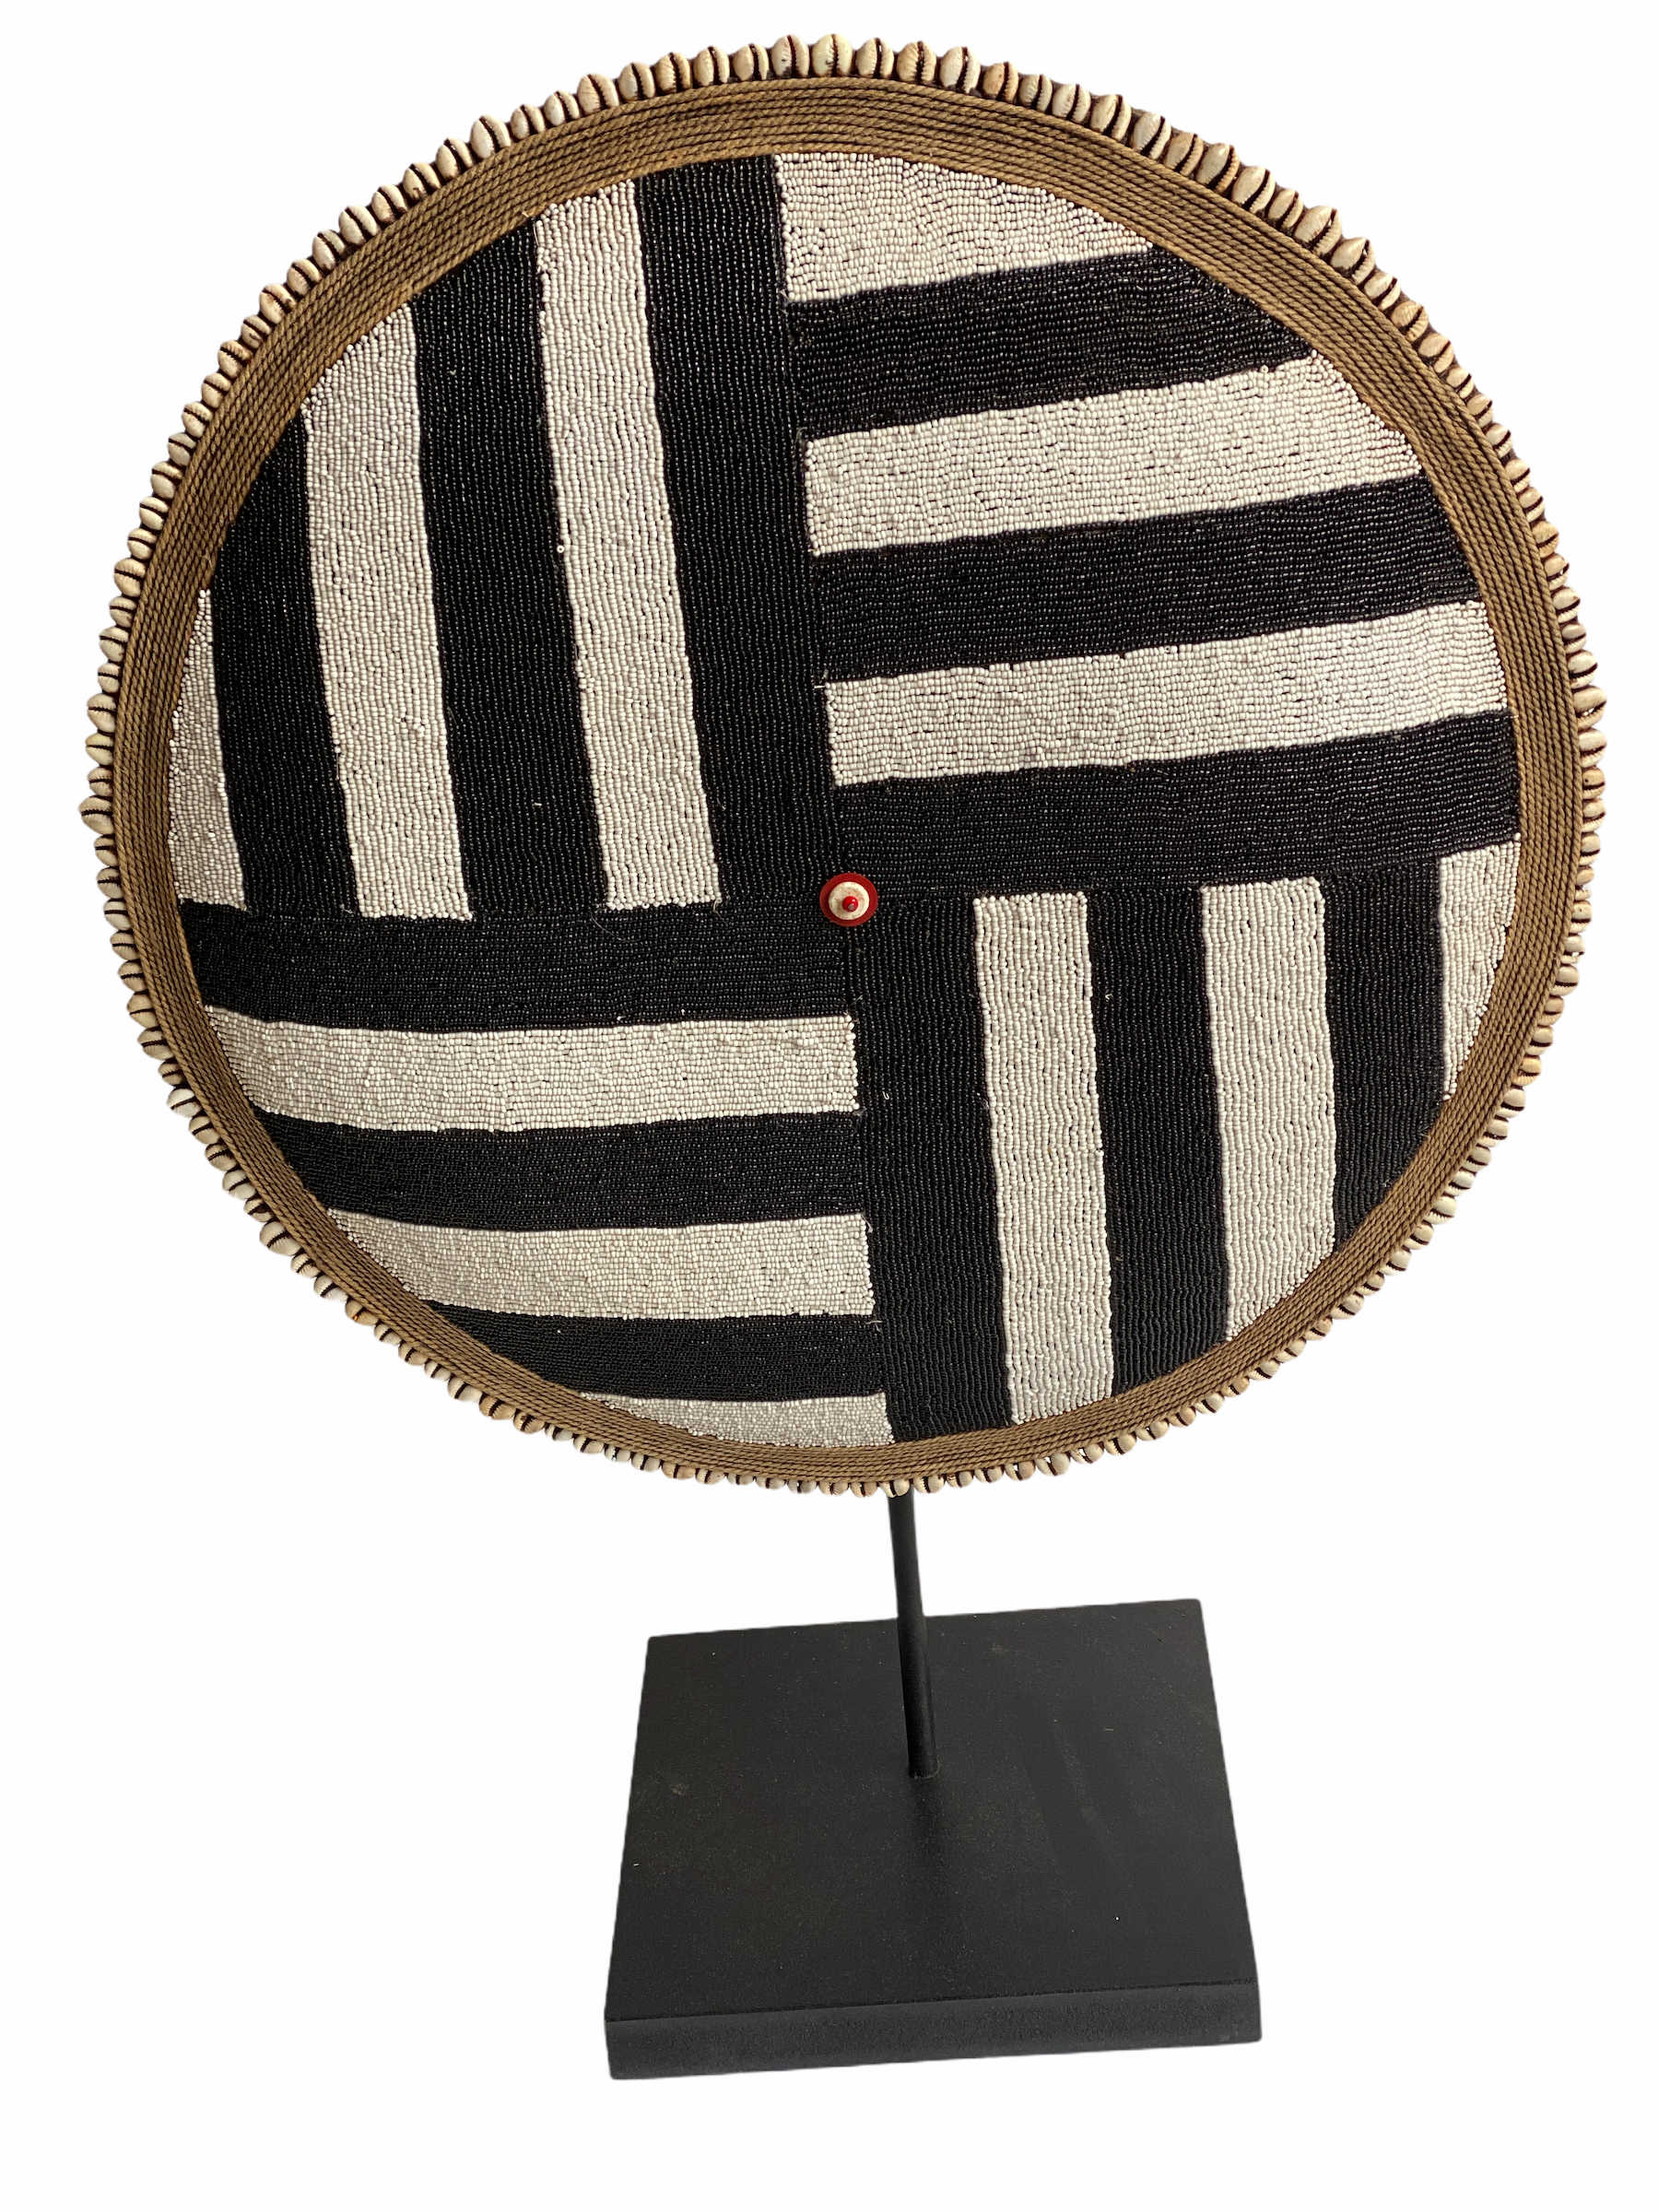 Cameroon Beaded Shield - L - 55cm Black & White